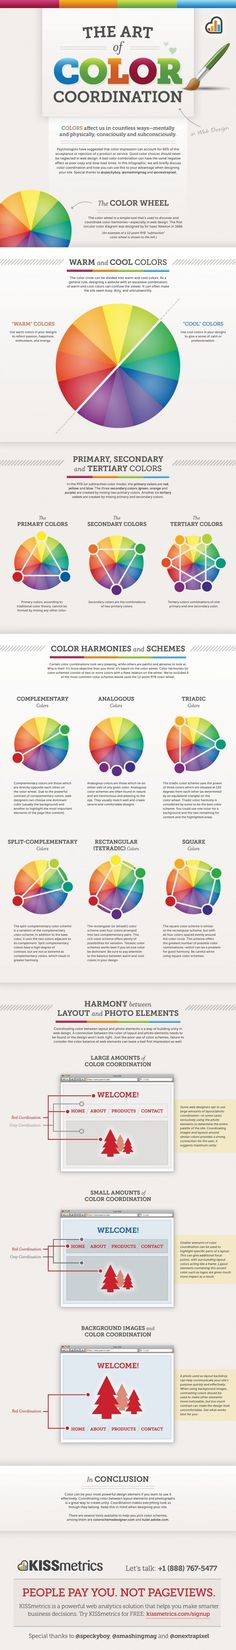 Design Tip: Color coordination is an important part of many design projects. Web Design being one of them! Check out this helpful Infographic to learn more!Web Design Tip: Color coordination is an important part of many design projects. Web Design being Graphisches Design, Graphic Design, Design Color, Interior Design, Design Layouts, Email Design, Flat Design, Cover Design, Design Elements